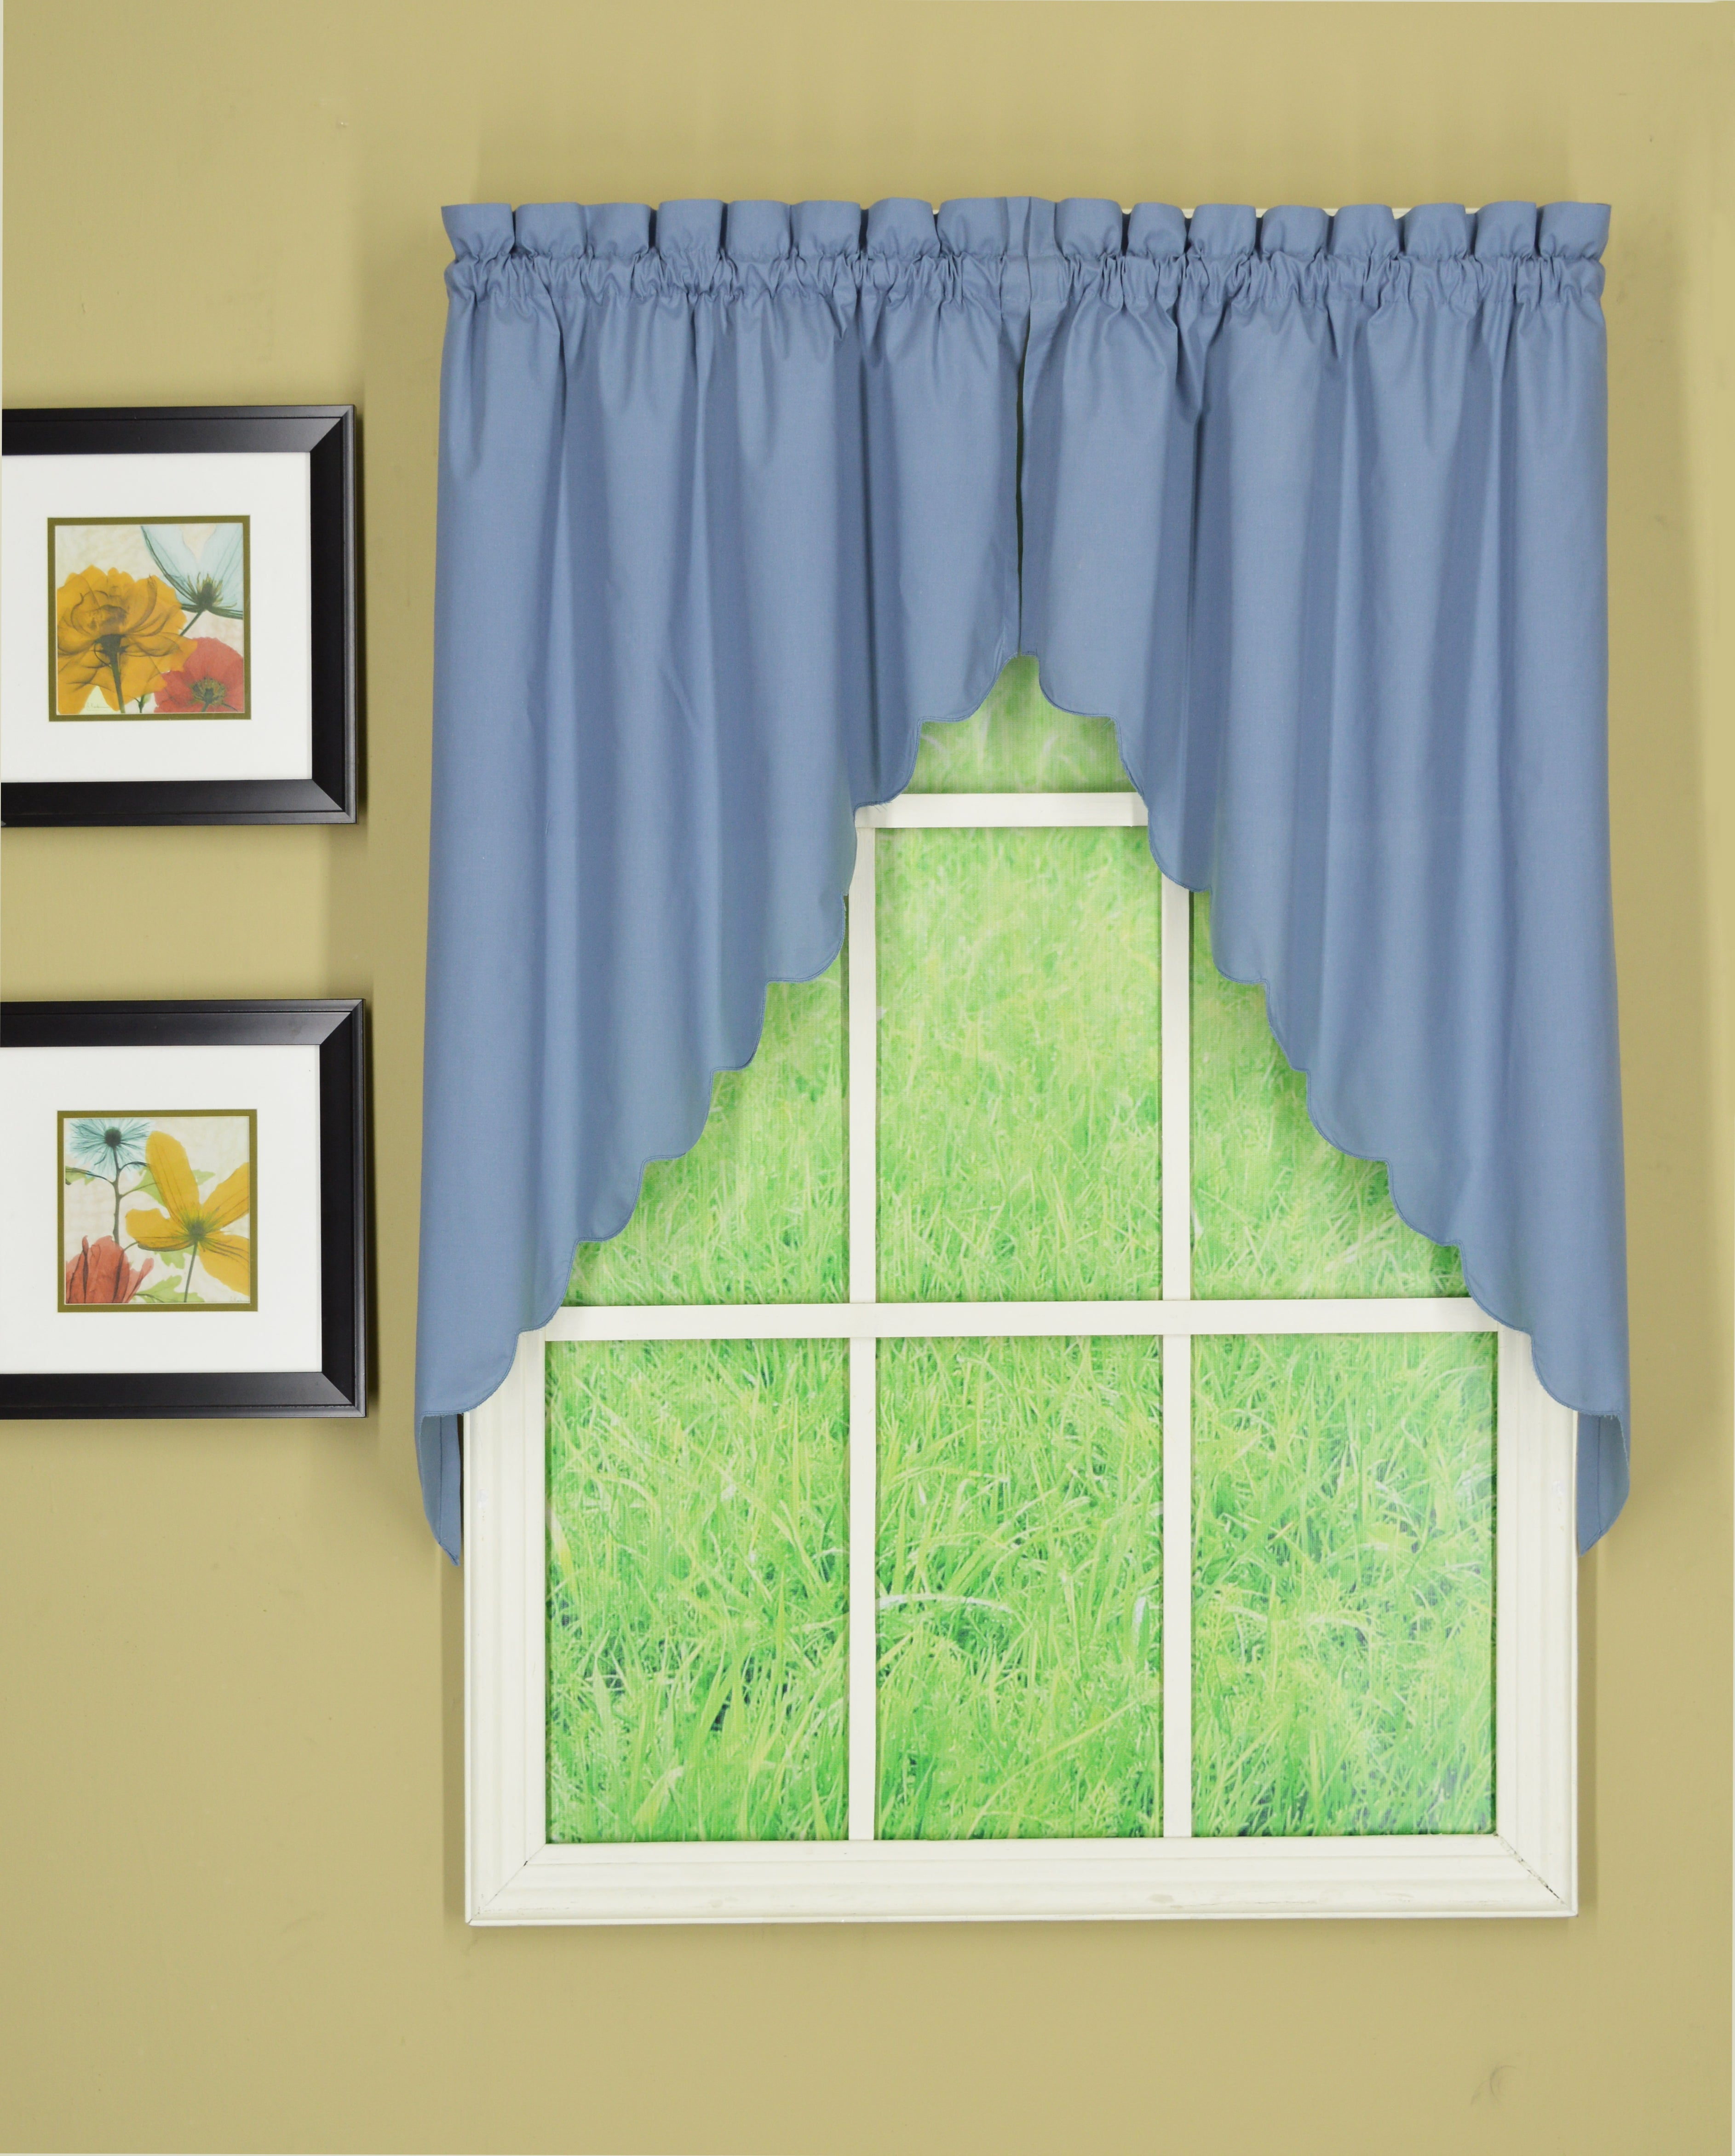 over window valances swags differences between and valance swag cornices difference the